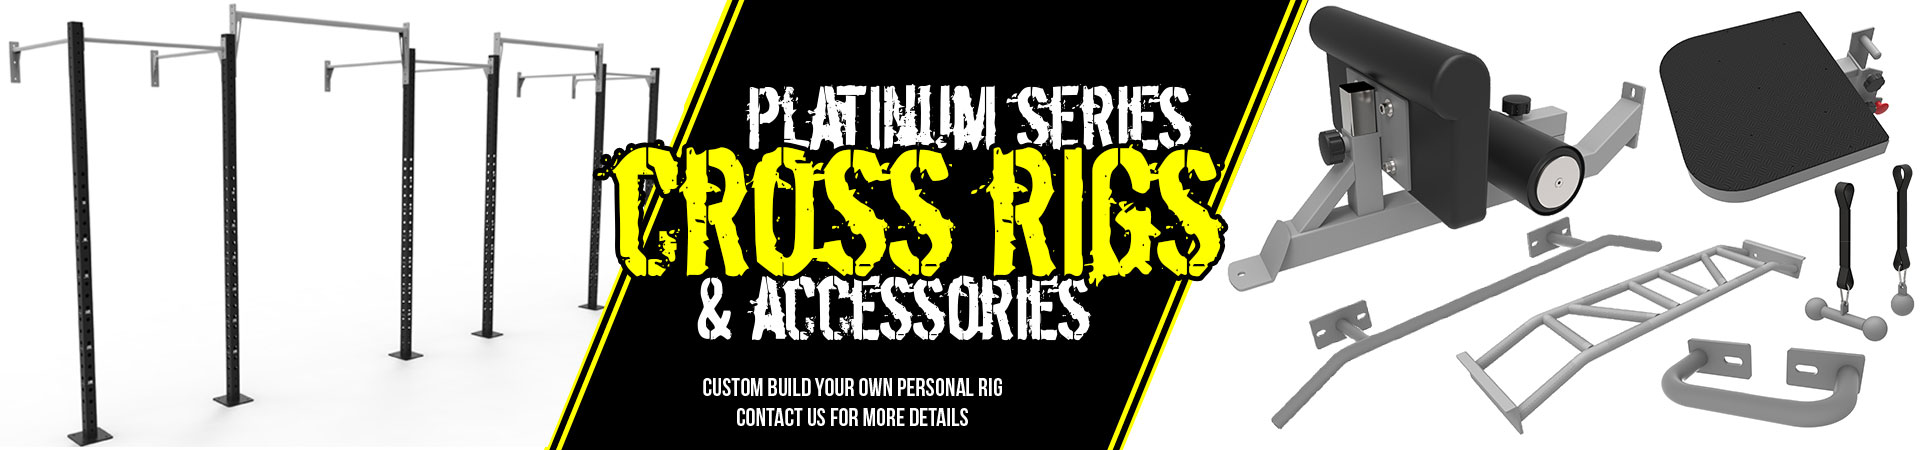 MA1 Platinum Series Cross Rig Range